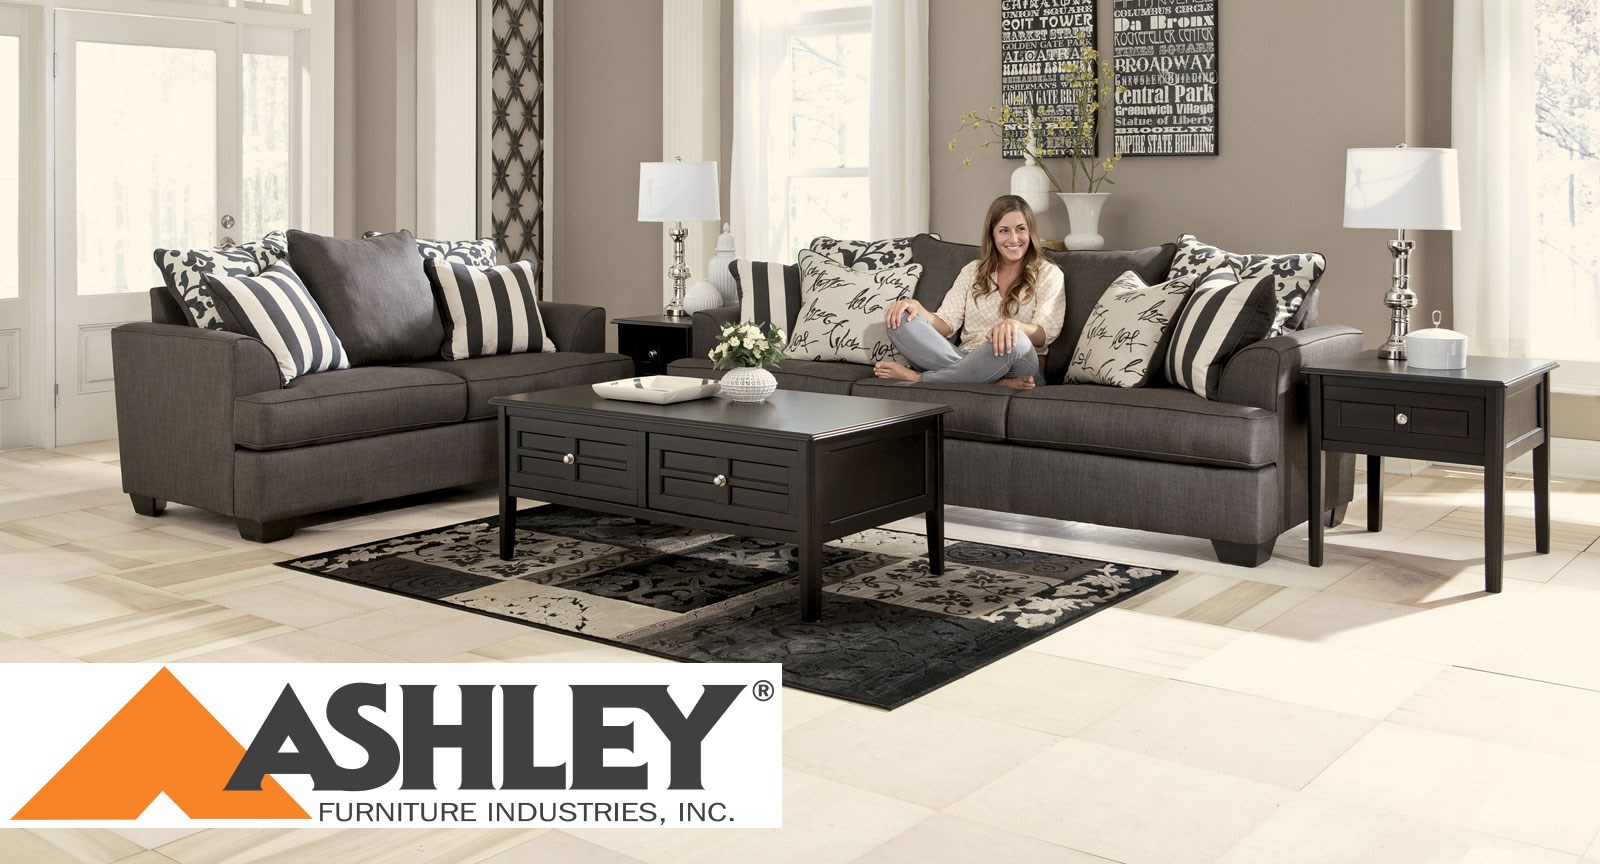 Furniture Warehouse Birmingham Ashley Furniture At Royal Furniture Memphis Jackson